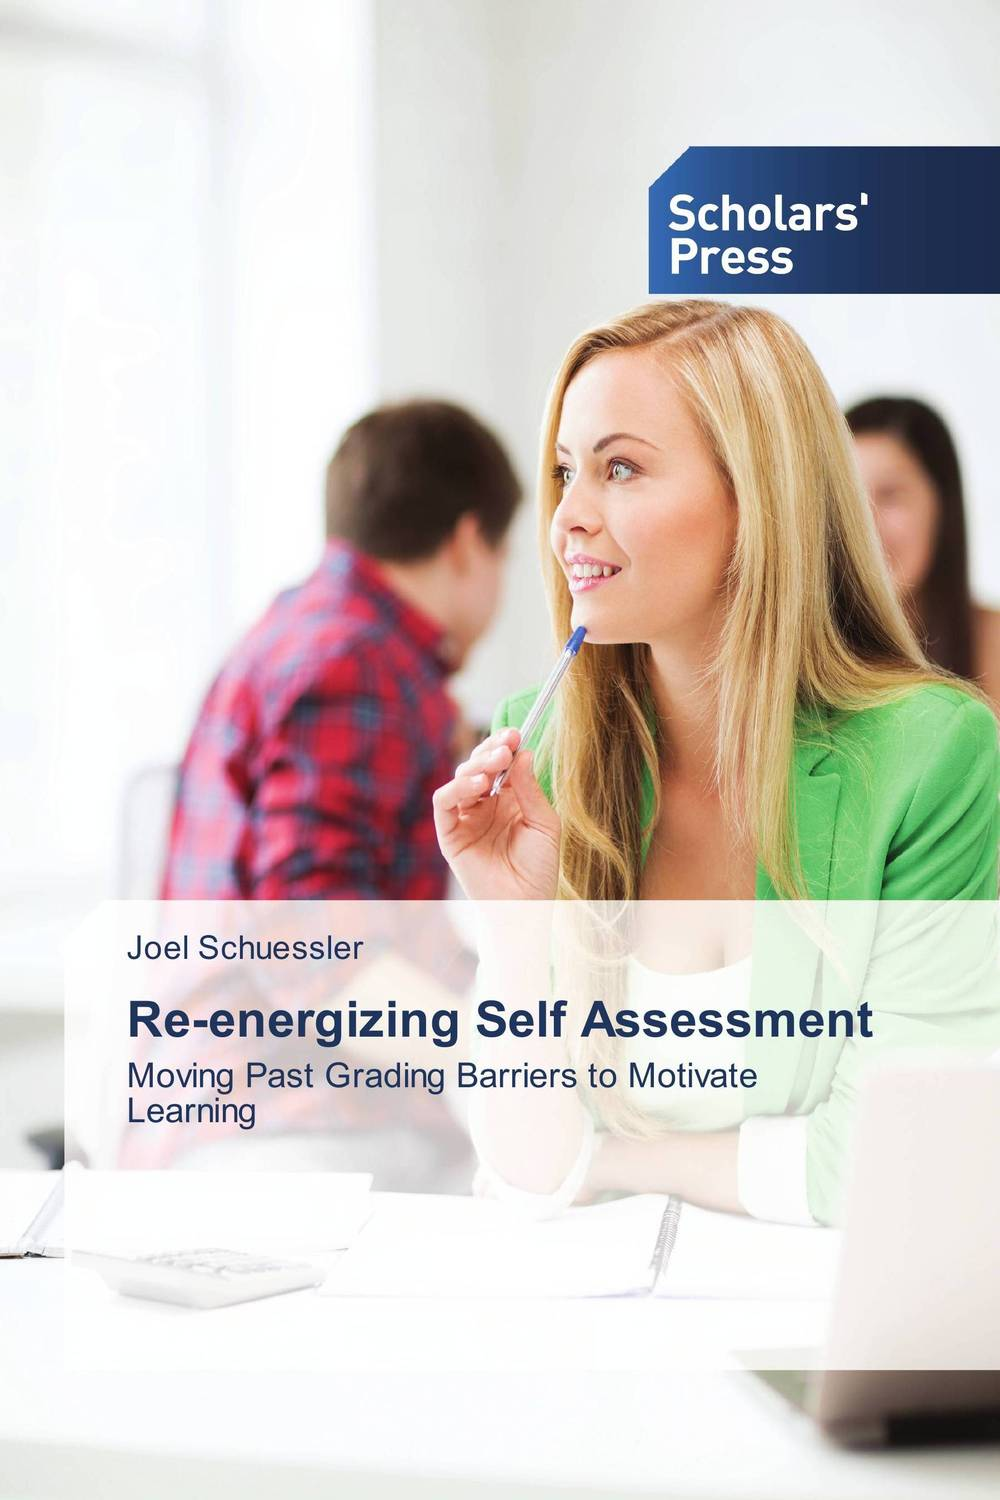 Re-energizing Self Assessment psychiatric interviewing and assessment